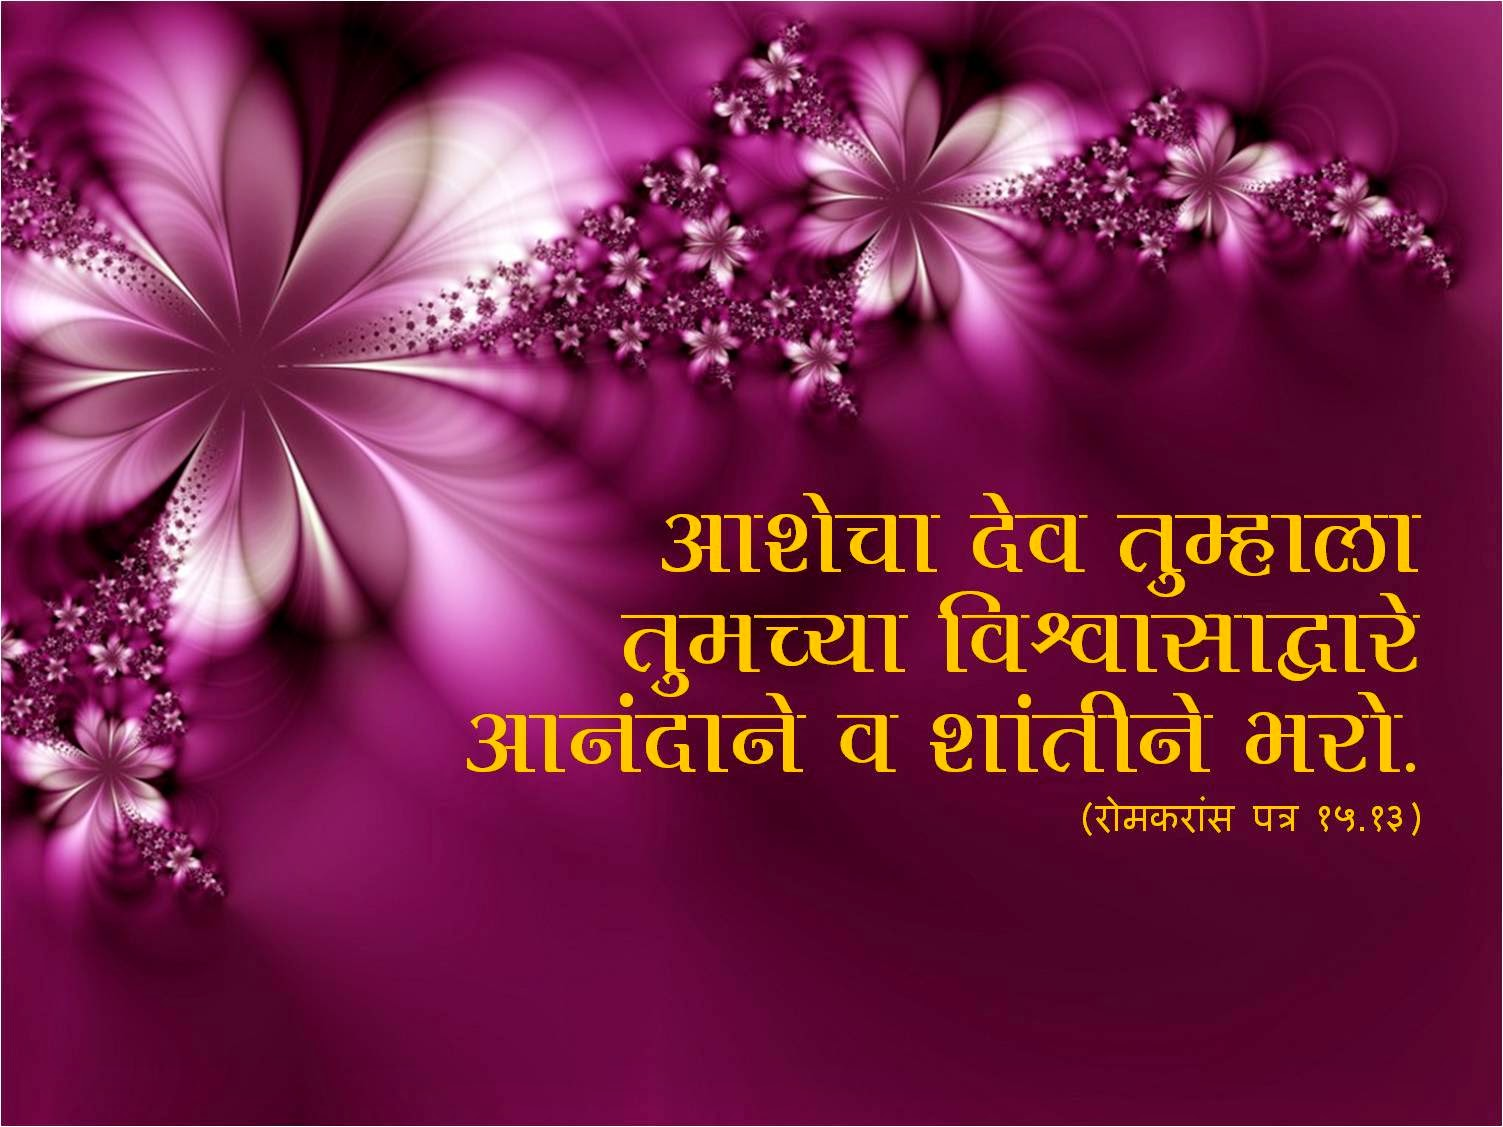 bible quotes marathi hd wallpapers for merry christmas